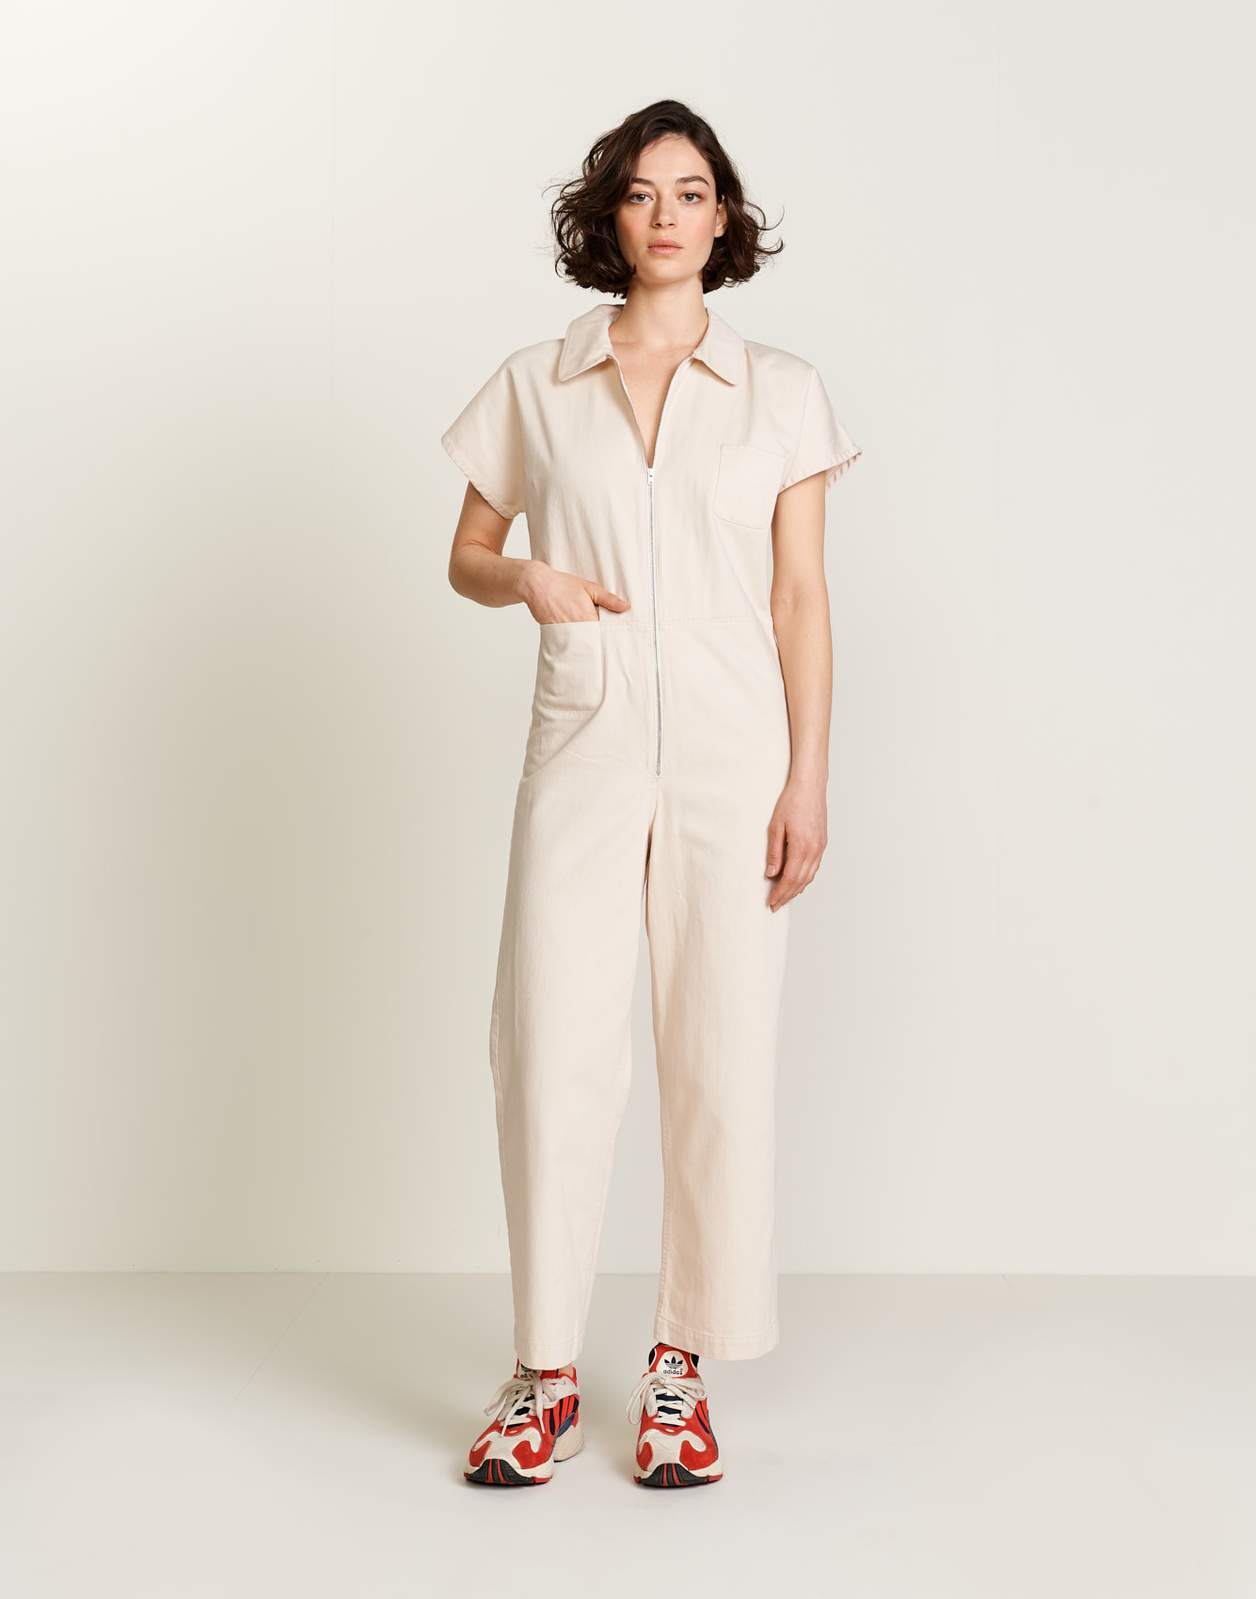 BELLEROSE_JUMPSUITS_LAYERS_P1136_MILKYWAY_26_1600x1600.jpg